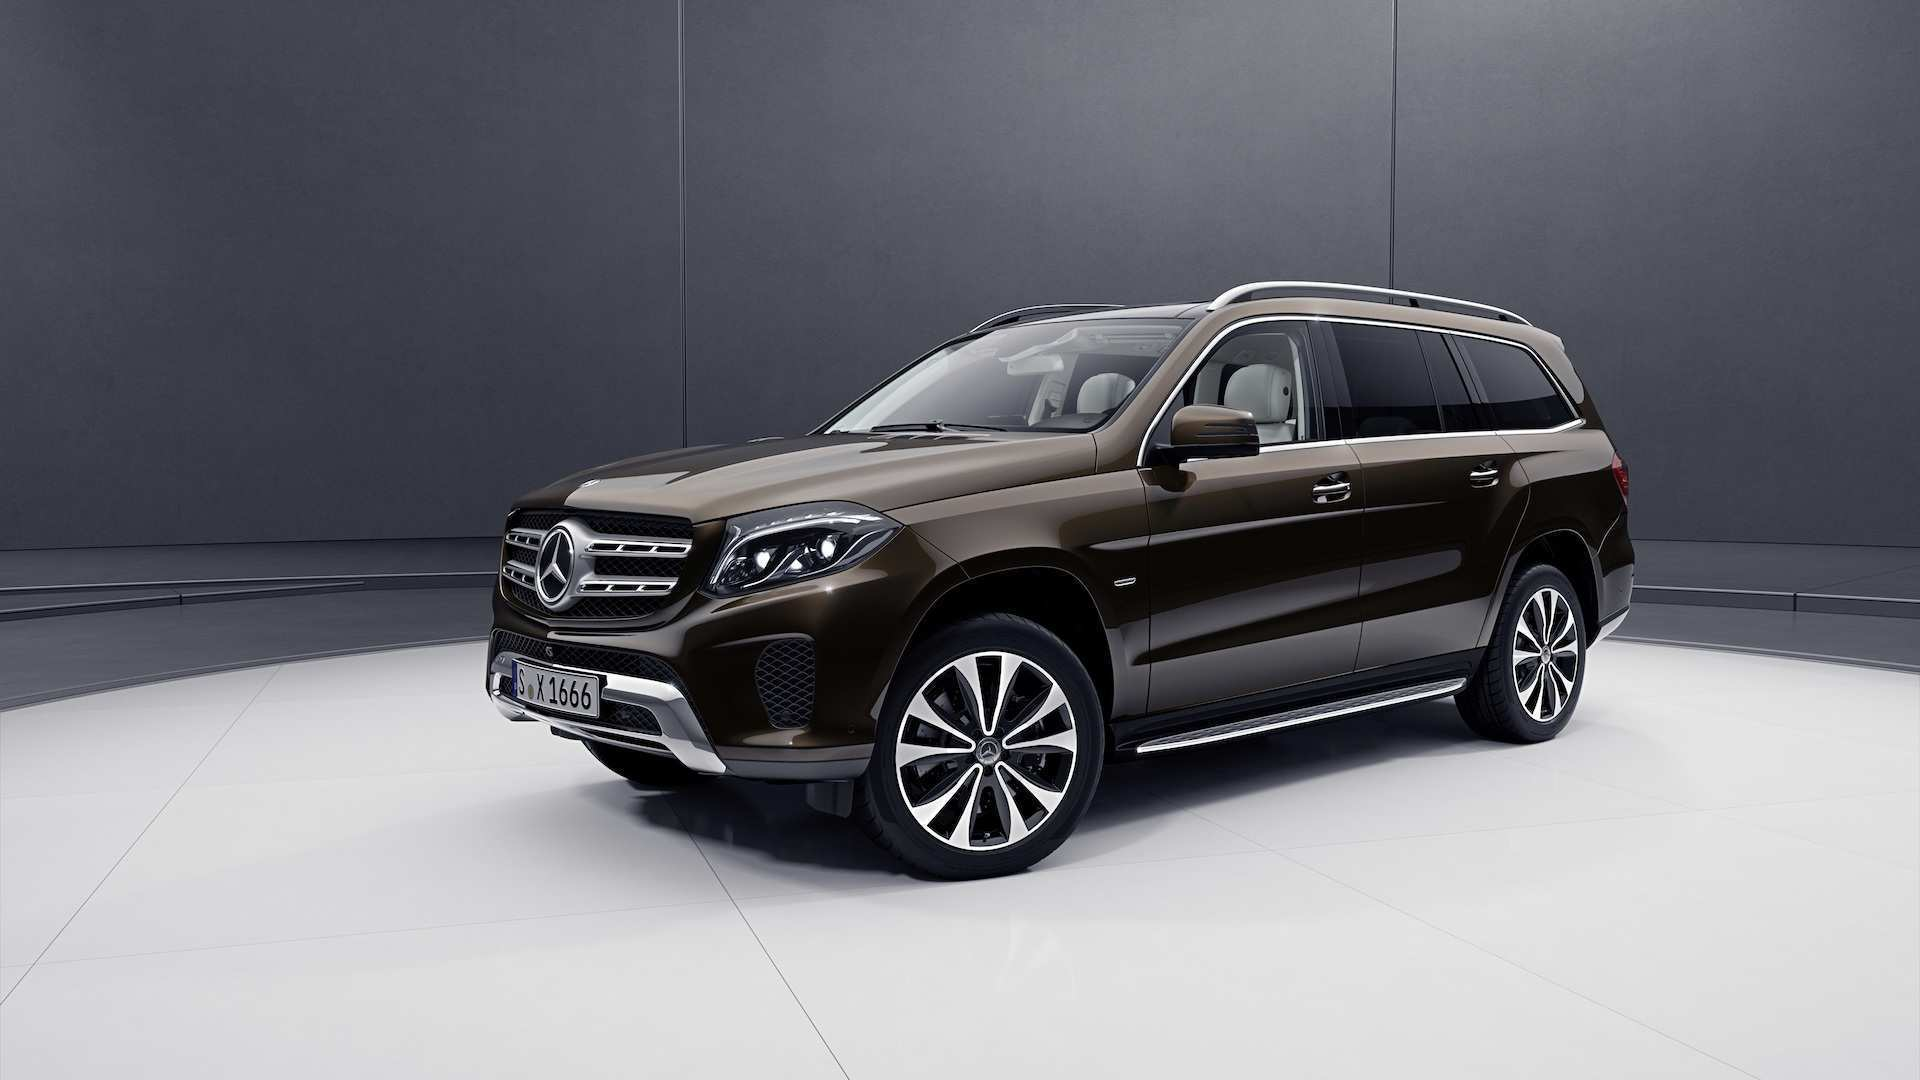 62 New Mercedes 2019 Hybrid Suv First Drive Picture by Mercedes 2019 Hybrid Suv First Drive